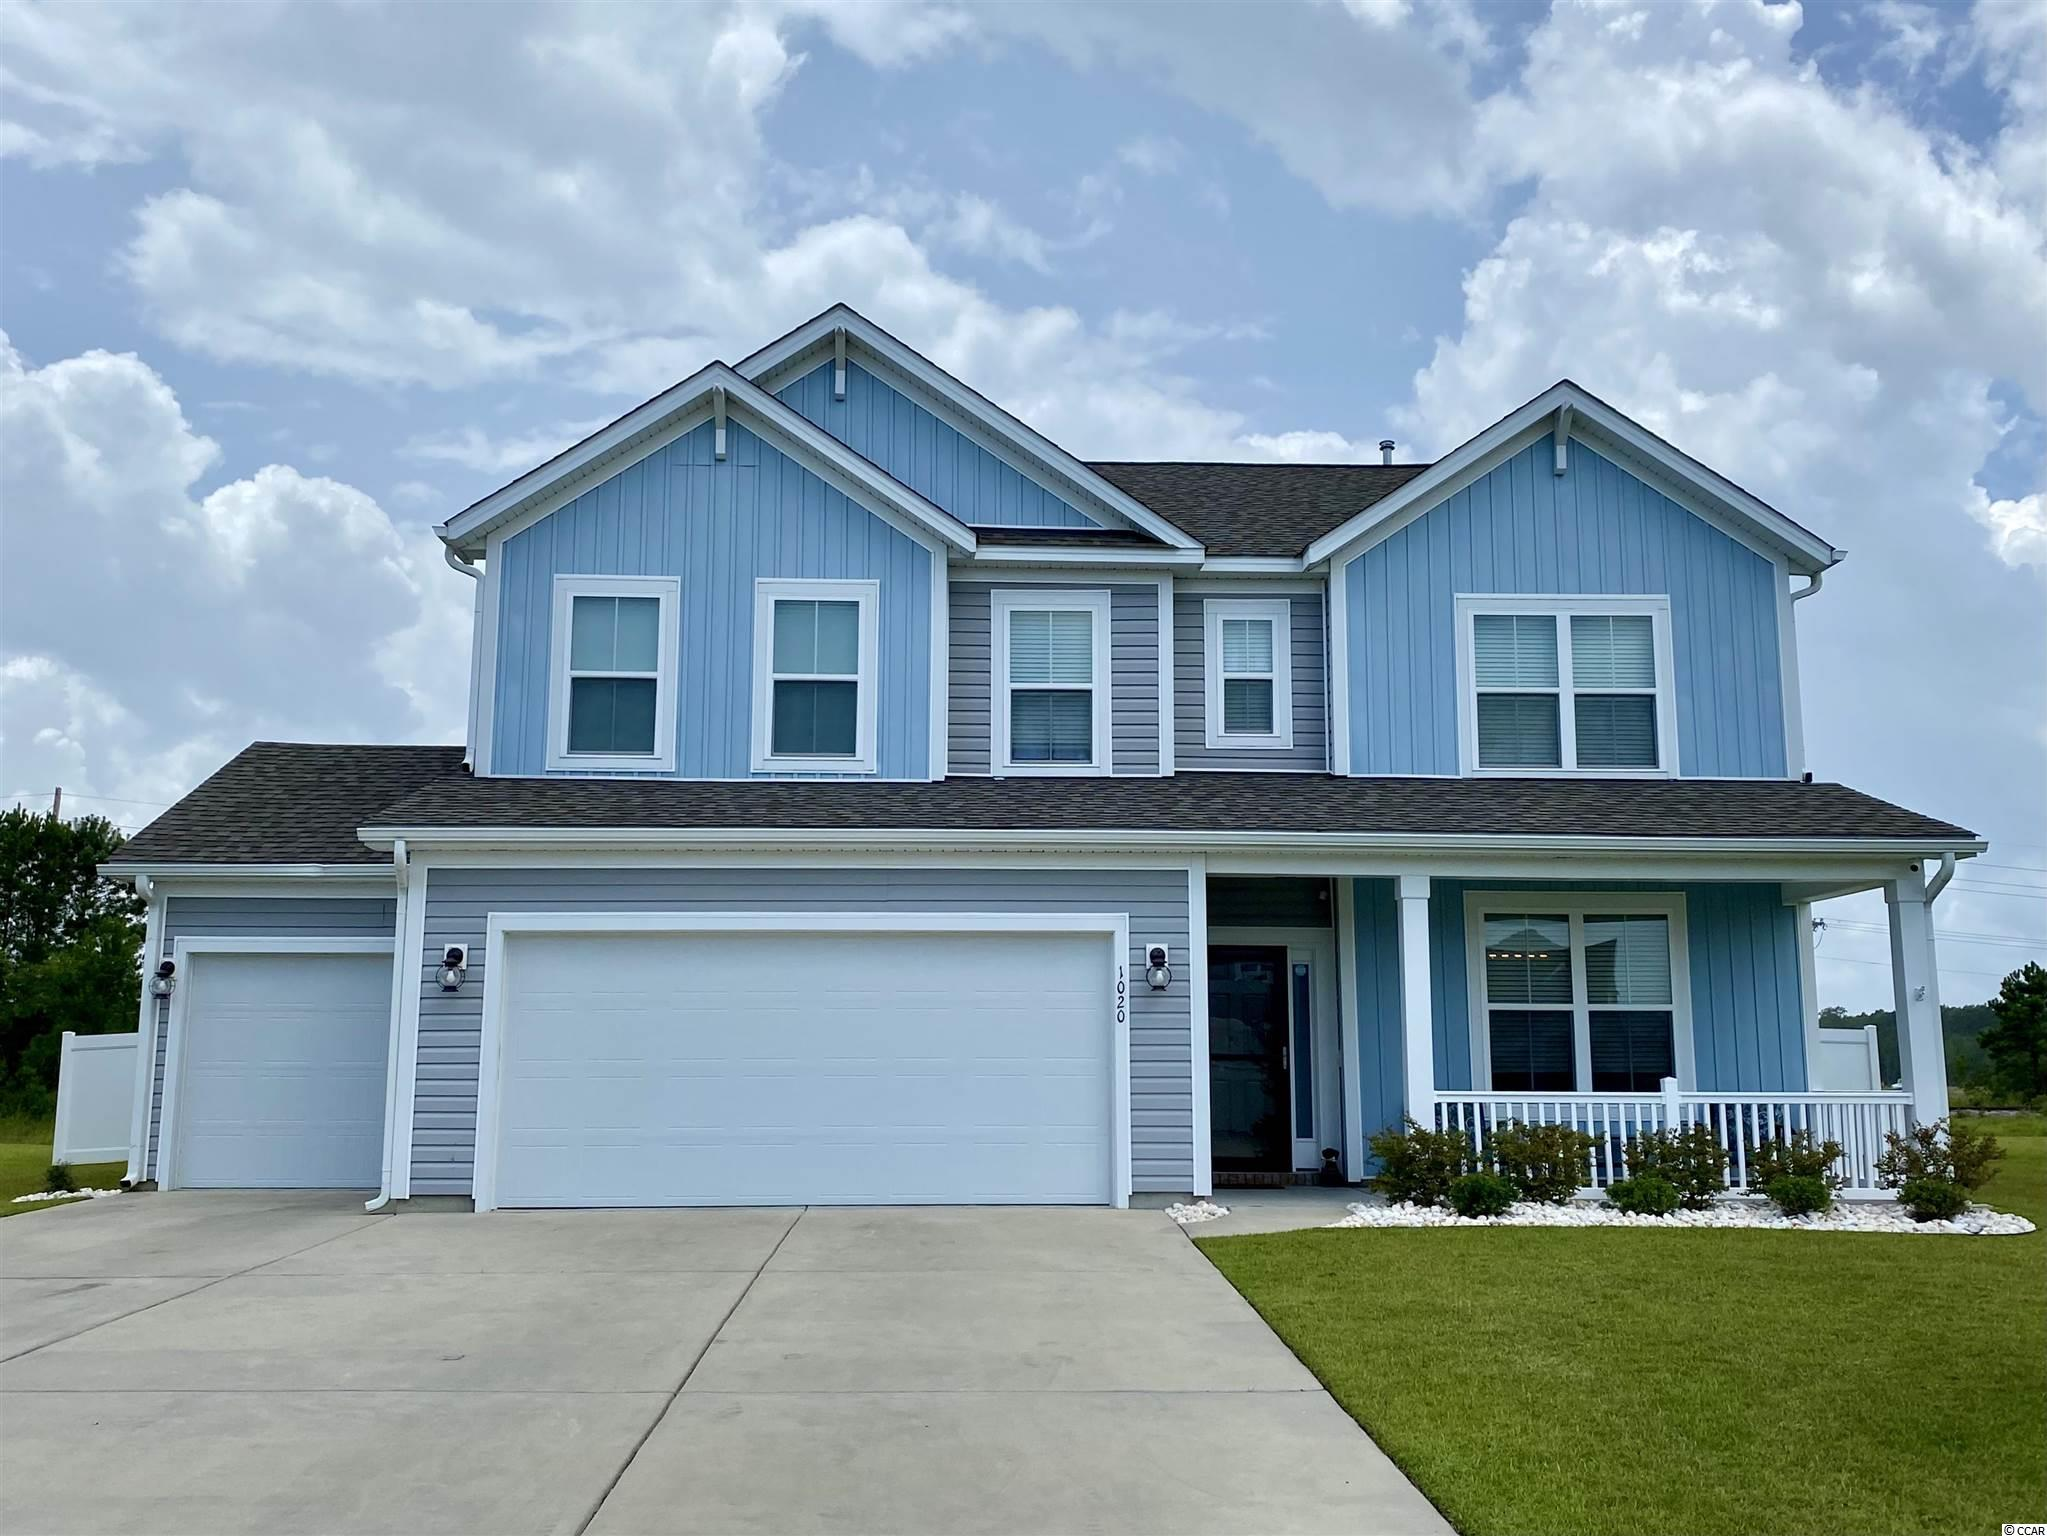 Stunning 4BD/3.5BA Two Story Home w/3 CAR GARAGE!! on Spacious Lot in Fantastic Natural Gas Community of Bella Vita!!  Home Built in 2018, 3 Yrs. Young & Shows Like New! Fantastic Floorplan! Perfect for Entertaining! Gorgeous Open Kitchen with Large Work Island & Breakfast Bar, Breakfast Nook, Granite Countertops, All Stainless Steel Appliances w/Gas Range, Pantry, Extensive Cabinet & Countertop Space! Spacious Great Room w/Gas Fireplace, Smooth Ceilings & Vinyl Plank Flooring! Beautiful Screened In Porch w/Large Grilling Patio in Completely Fenced in Back Yard!! All Bedrooms, Laundry & Additional Living Space are Located on the Second Floor. Spacious Master Suite w/Barn Door Bath Entry, His & Her Sinks, Custom Tiled Walk In Shower and Sizeable Walk In Closet. Other Extras Include: Utility Sink In Garage, 50amp & 30amp Hookup for RV's, Back feed for Generator, Security System w/Cameras, Additional Under Stair Storage, All Appliances Including Washer & Dryer Convey. Bella Vita is located minutes to shopping, entertainment, restaurants, and the beach! Pedestrian & Bike Friendly Neighborhood w/Sidewalks Throughout! On-site Amenity Center features gym, kitchen, double-sided stone fireplace, game room & outdoor pool!